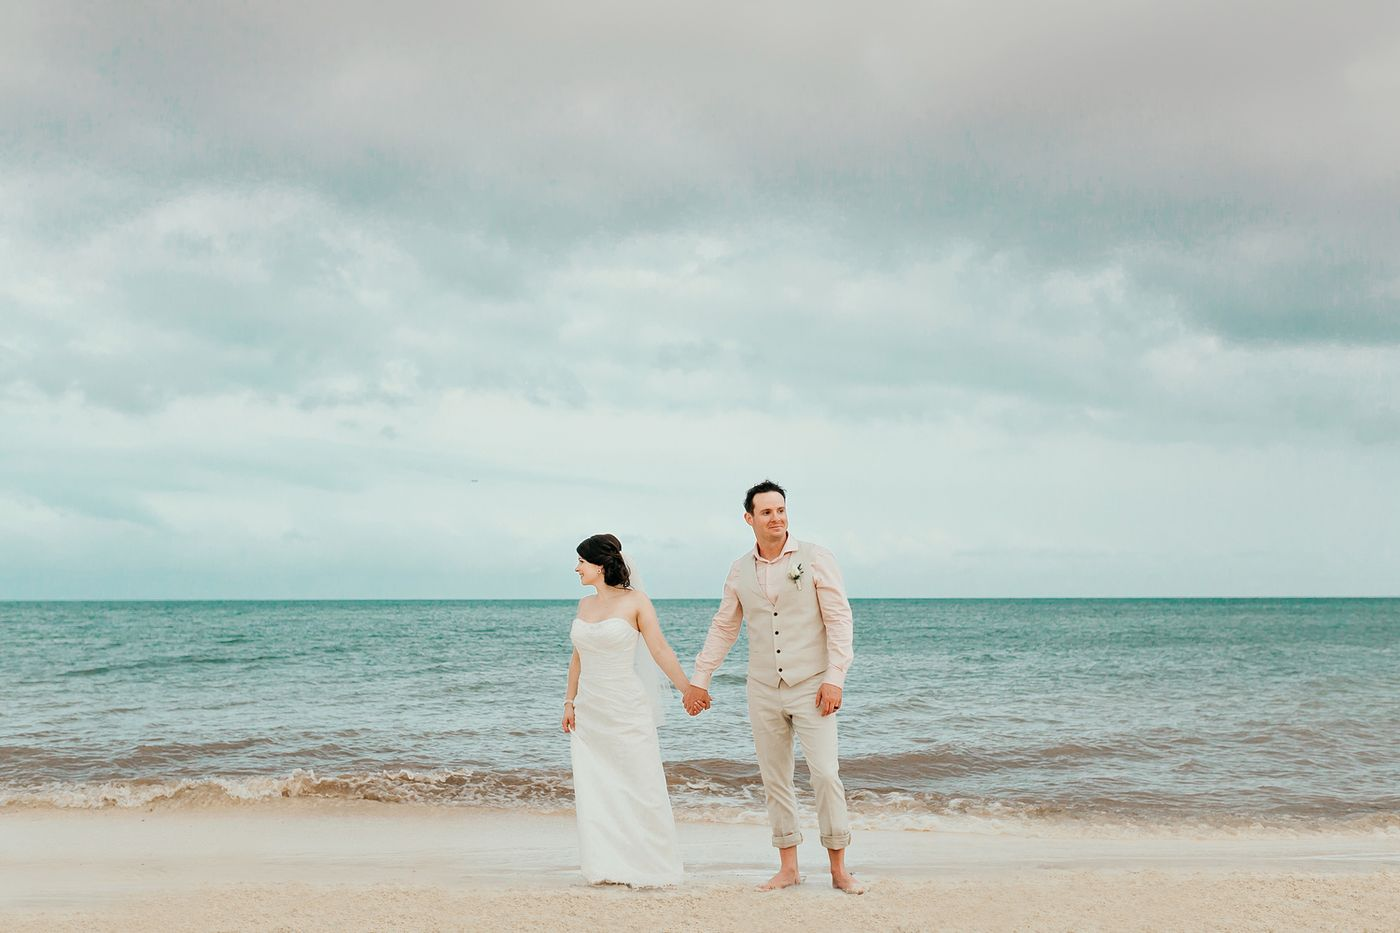 Wedding Photography, Mellissa Receveur Photography, Cancun Wedding, Mexico Wedding